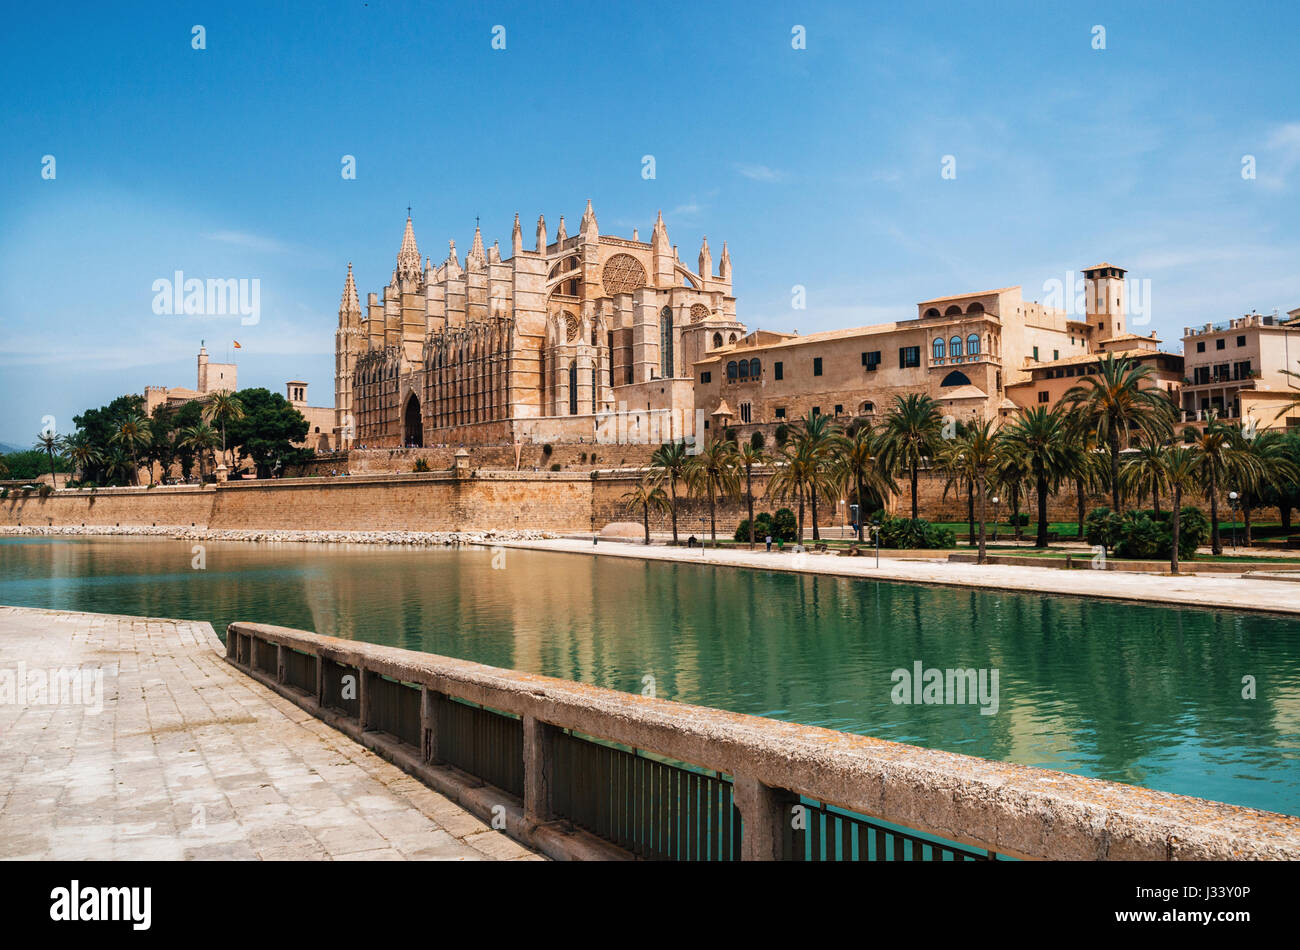 Park de la Mar against La Seu, The gothic medieval cathedral of Palma de Mallorca, Spain. The Cathedral of Santa - Stock Image